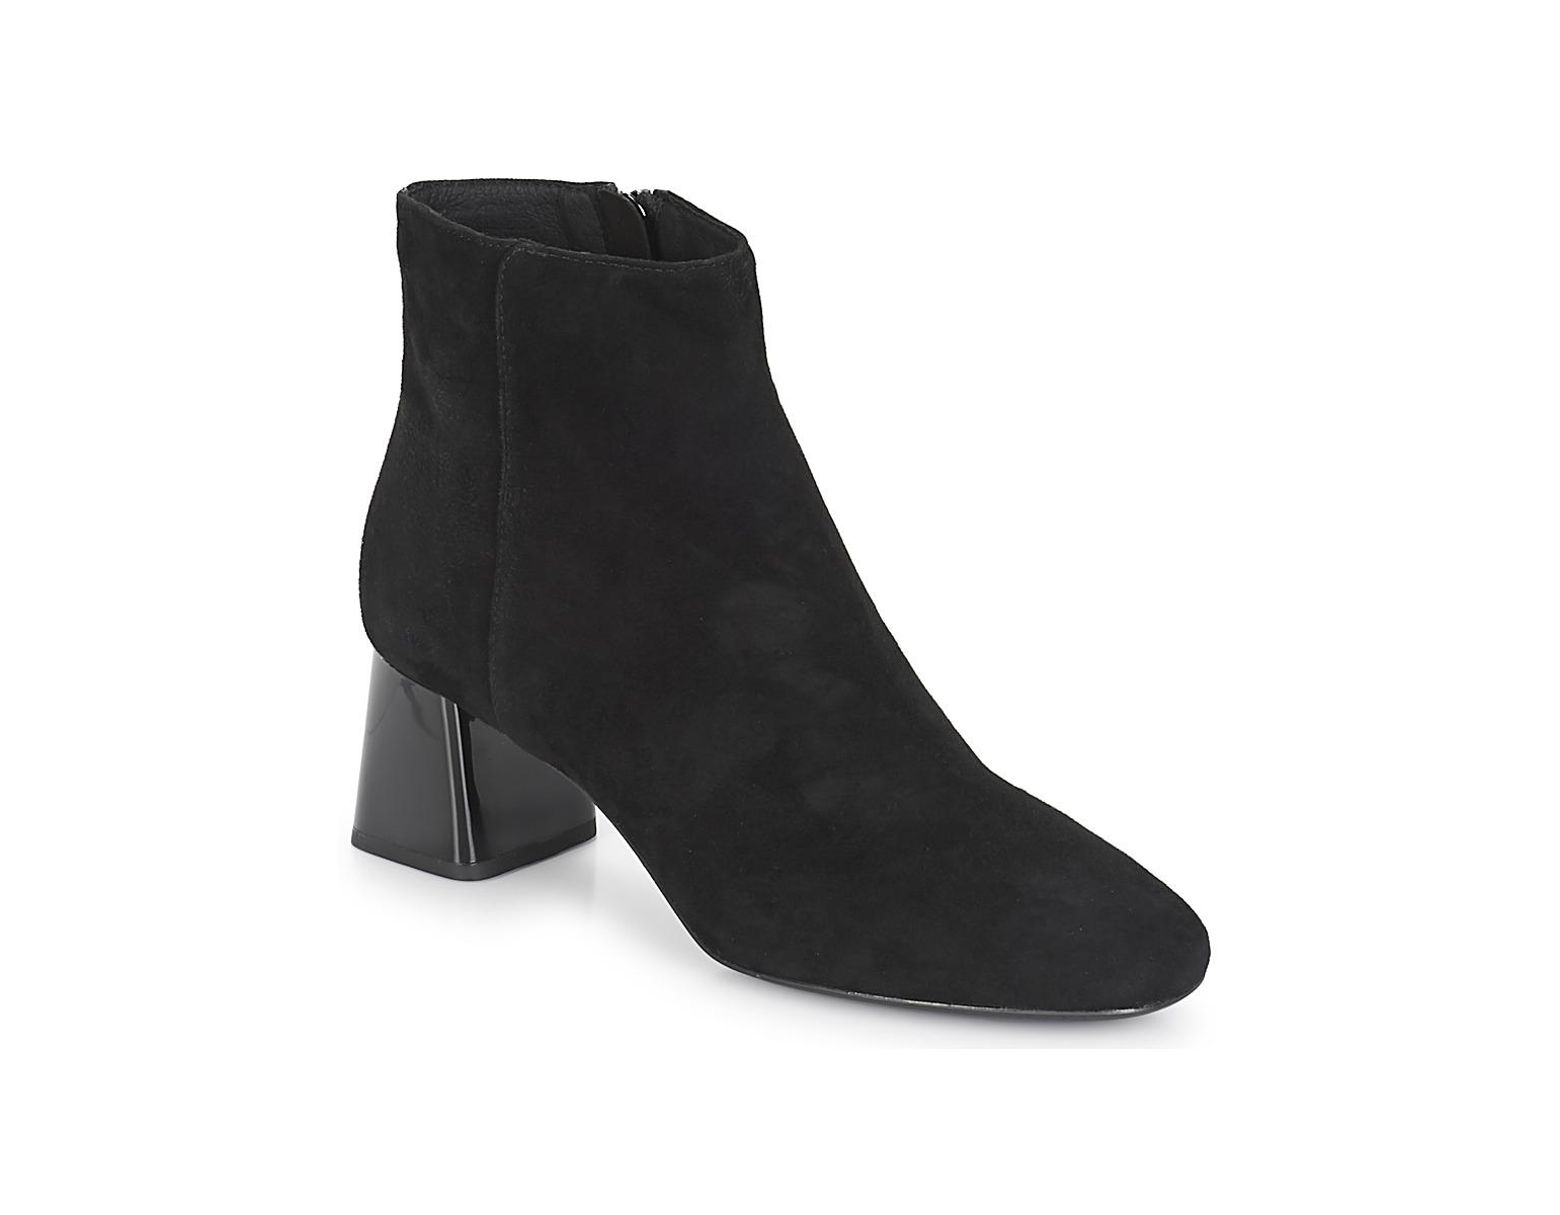 7528c018e7a Geox D Seylise Mid Low Ankle Boots in Black - Lyst